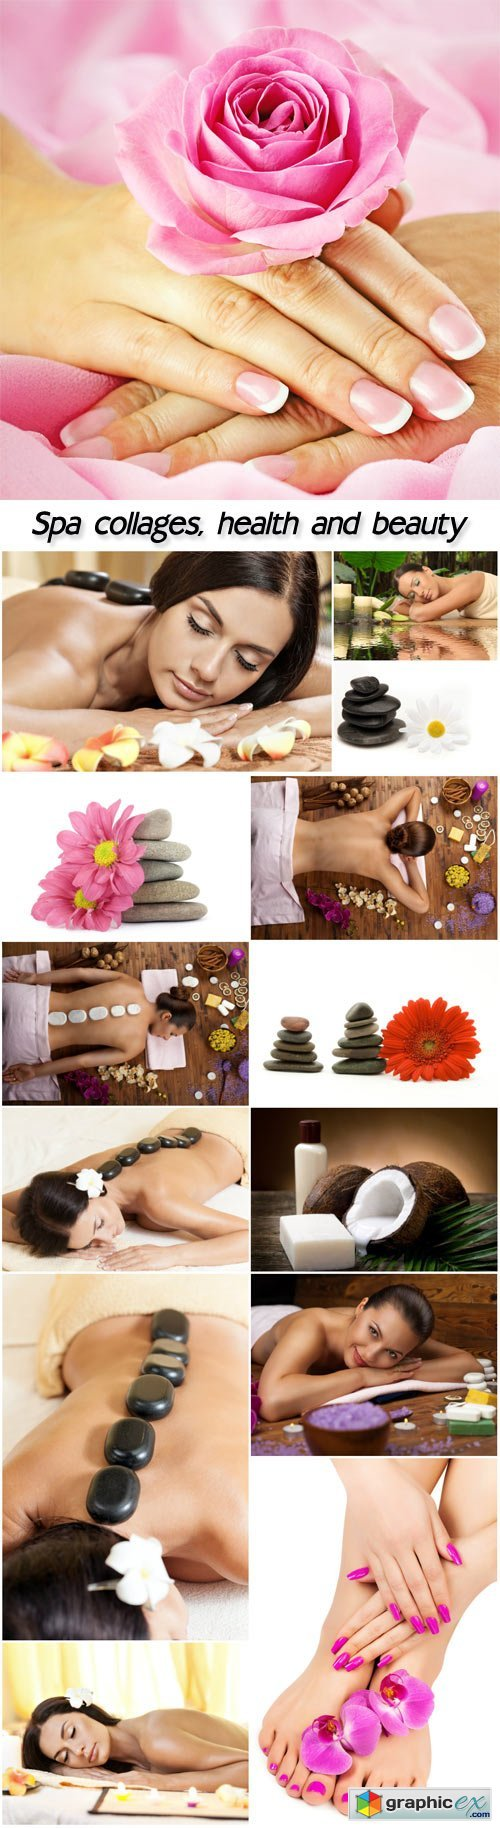 Spa collages, health and beauty, women